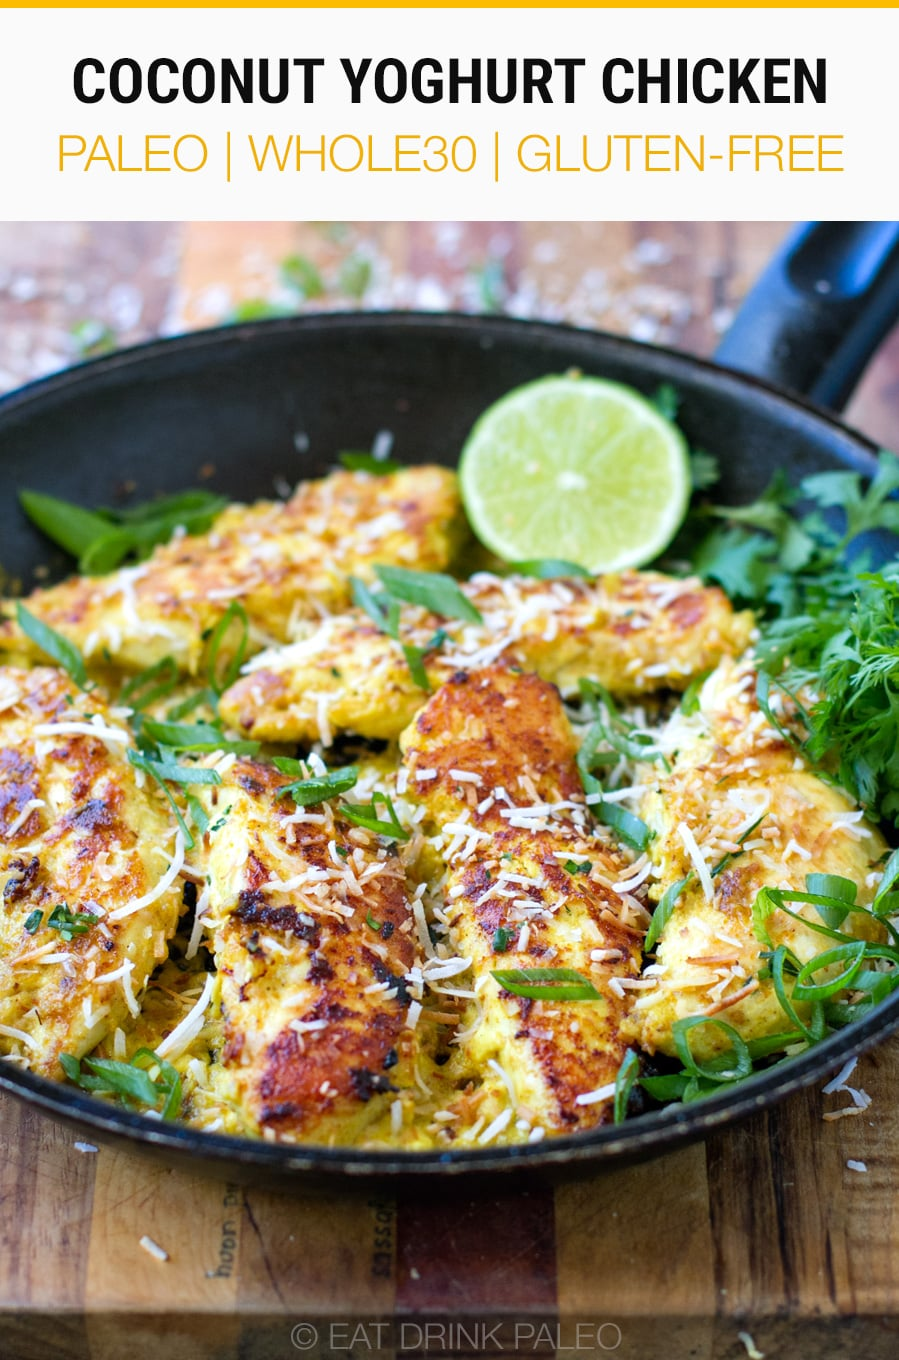 Coconut Yoghurt Chicken (Paleo, Whole30, Keto, Gluten-free, Dairy-free) #chicken #paleo #whole30 #chickenrecipes #coconut #keto